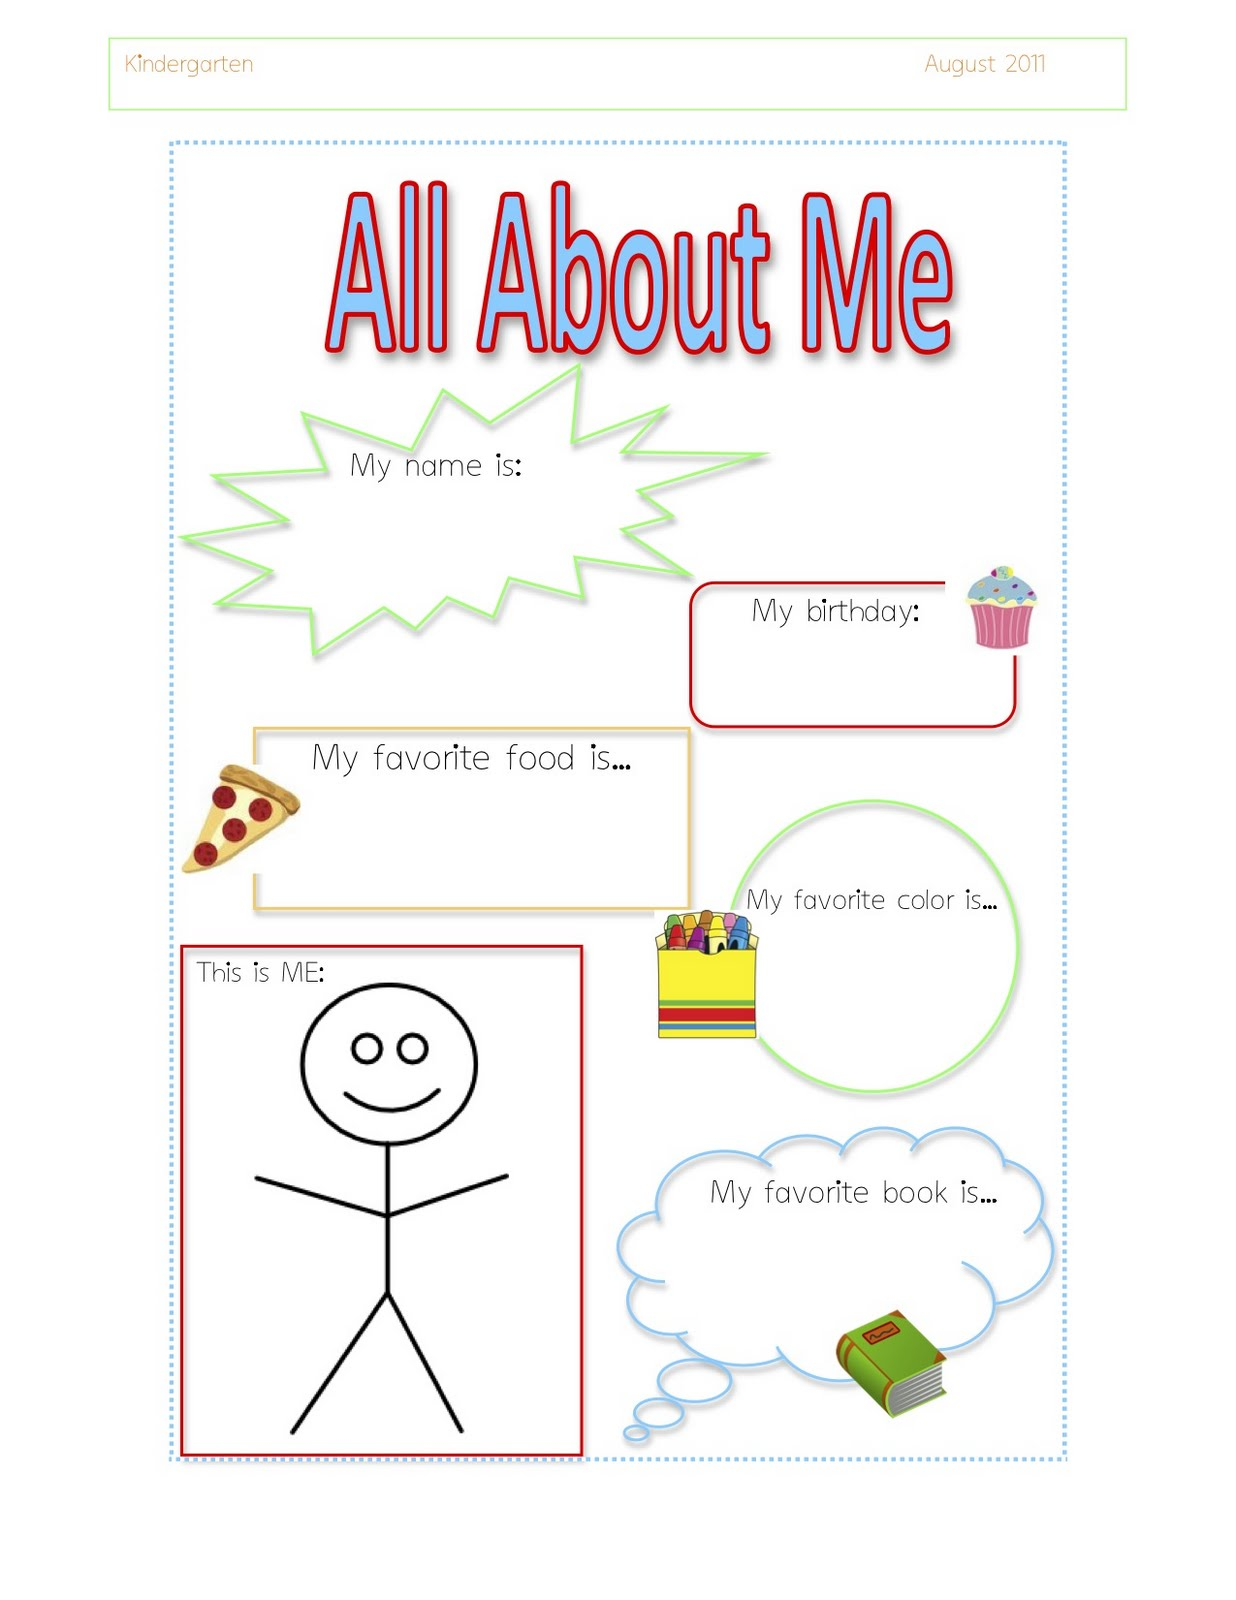 Preschool Printable All About Me Images